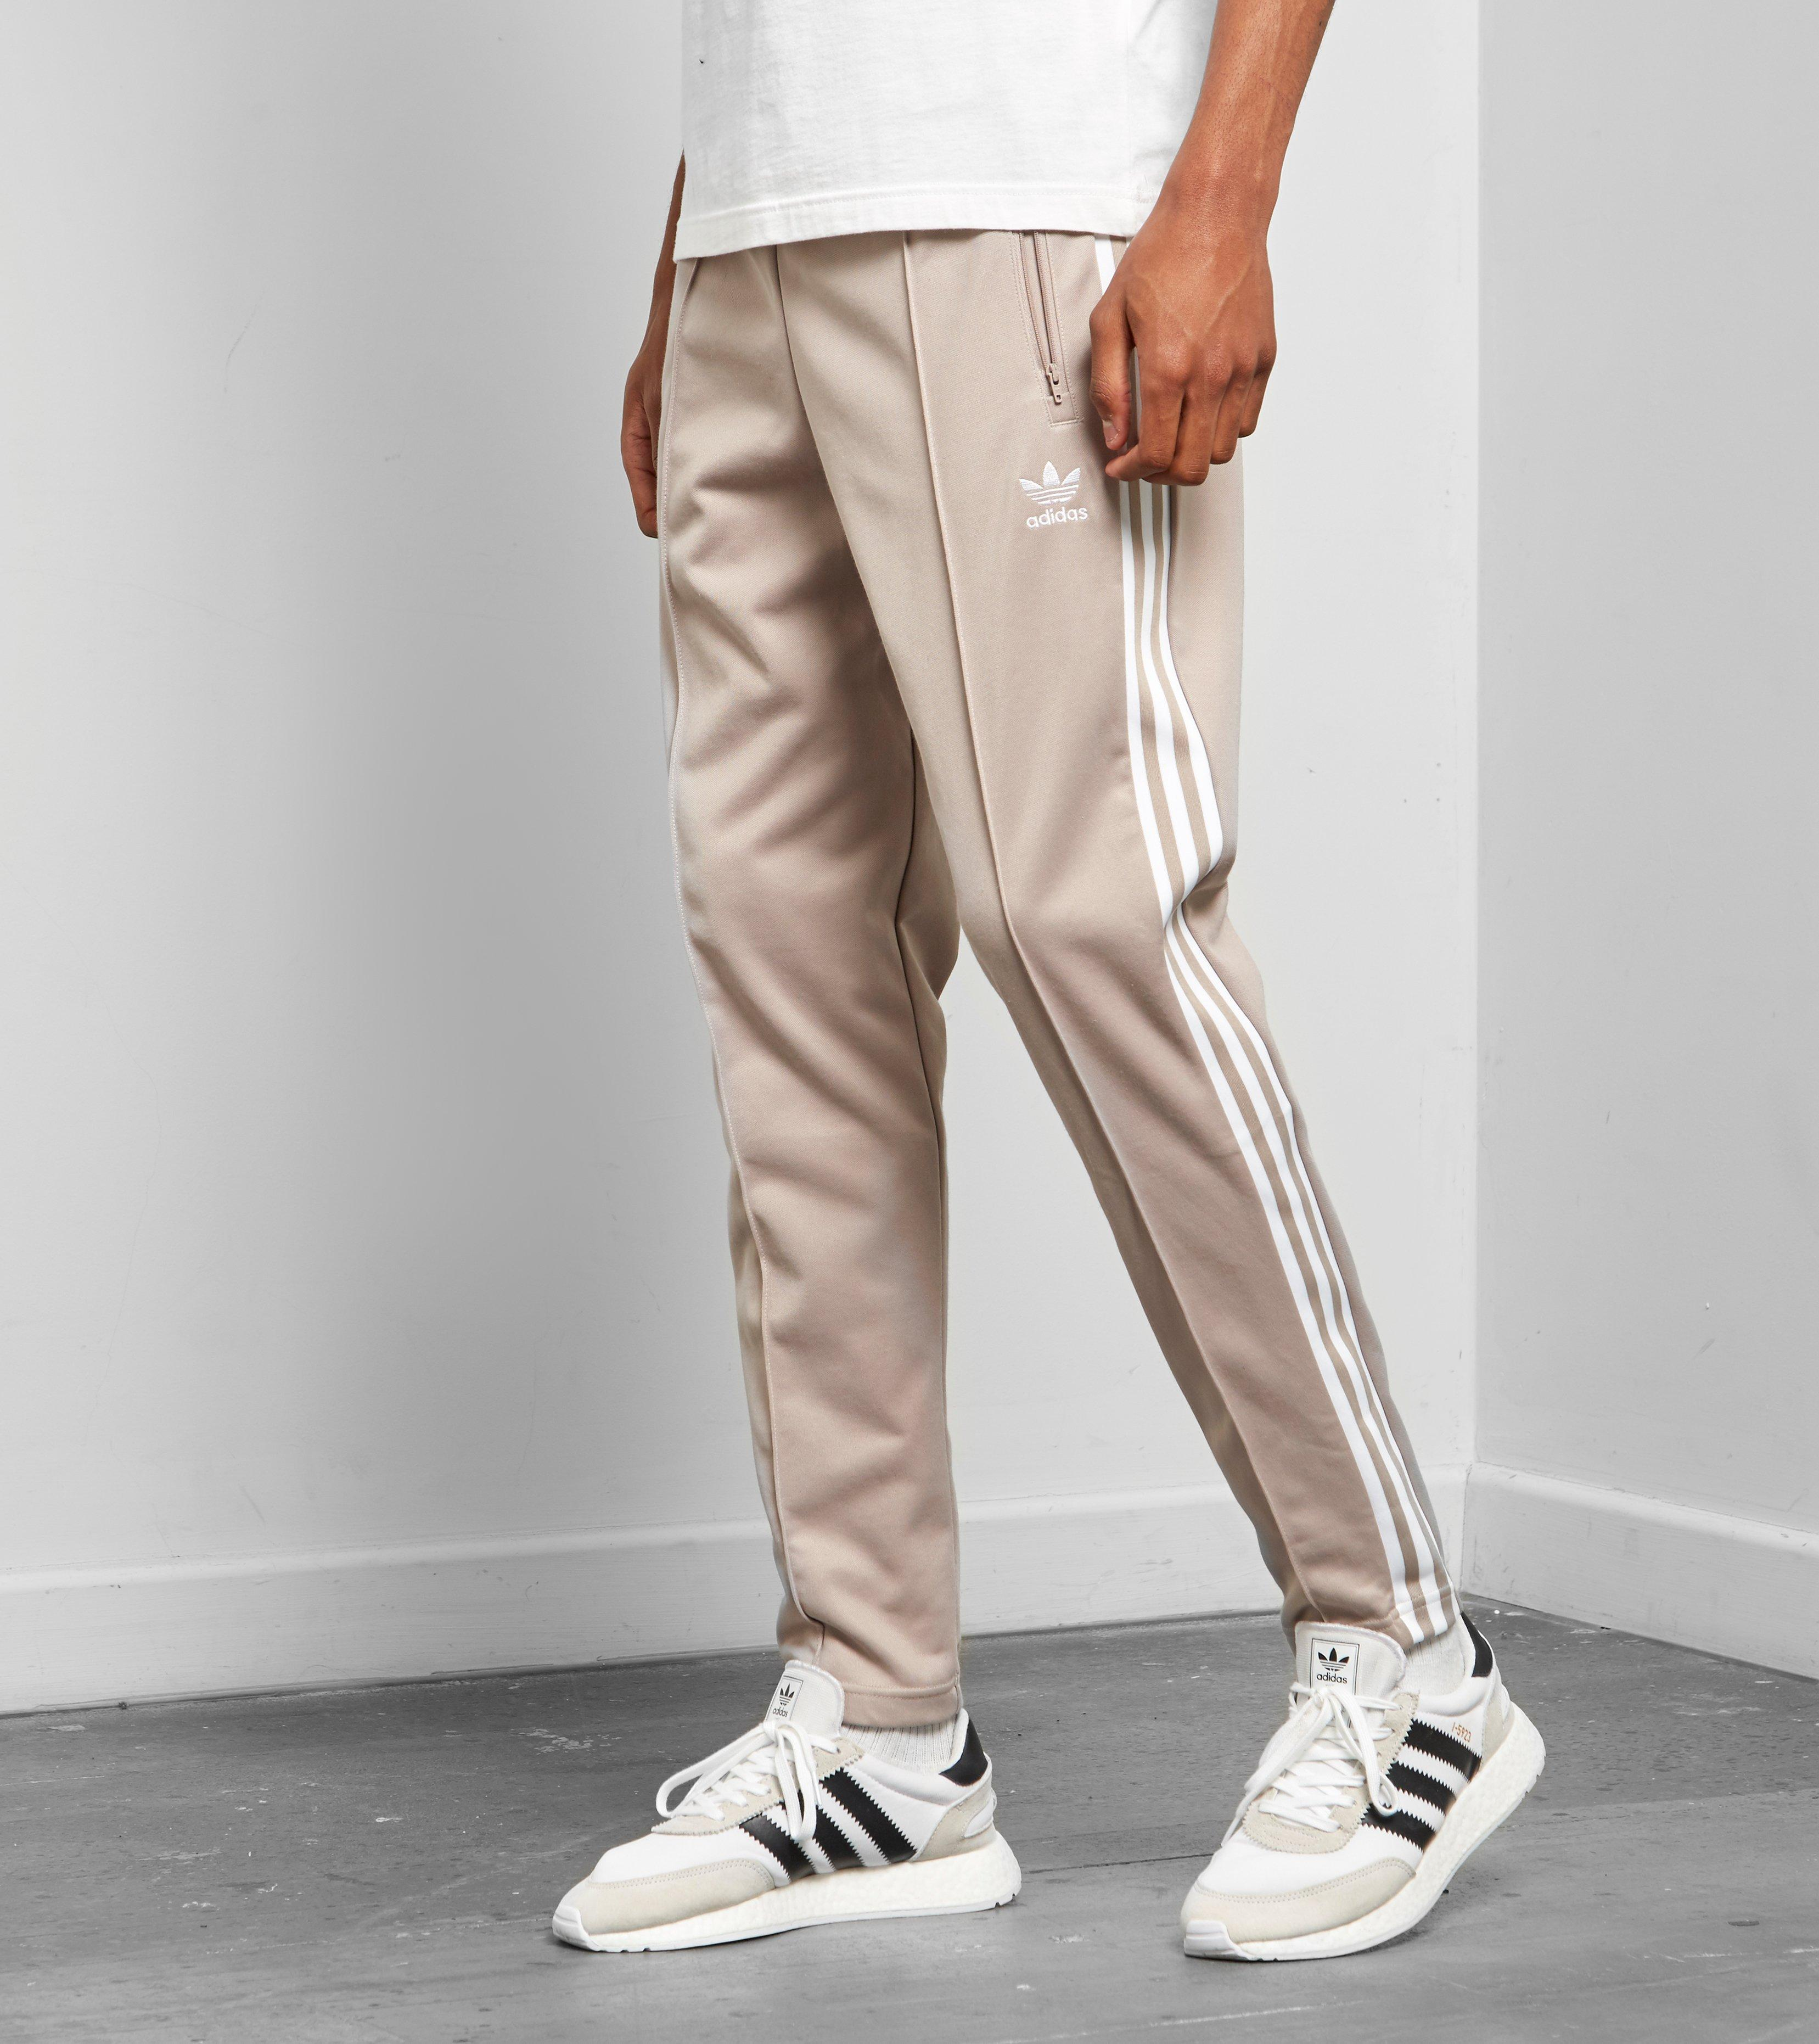 5eda71985 adidas Originals Beckenbauer Cuffed Track Pants in Gray for Men - Lyst